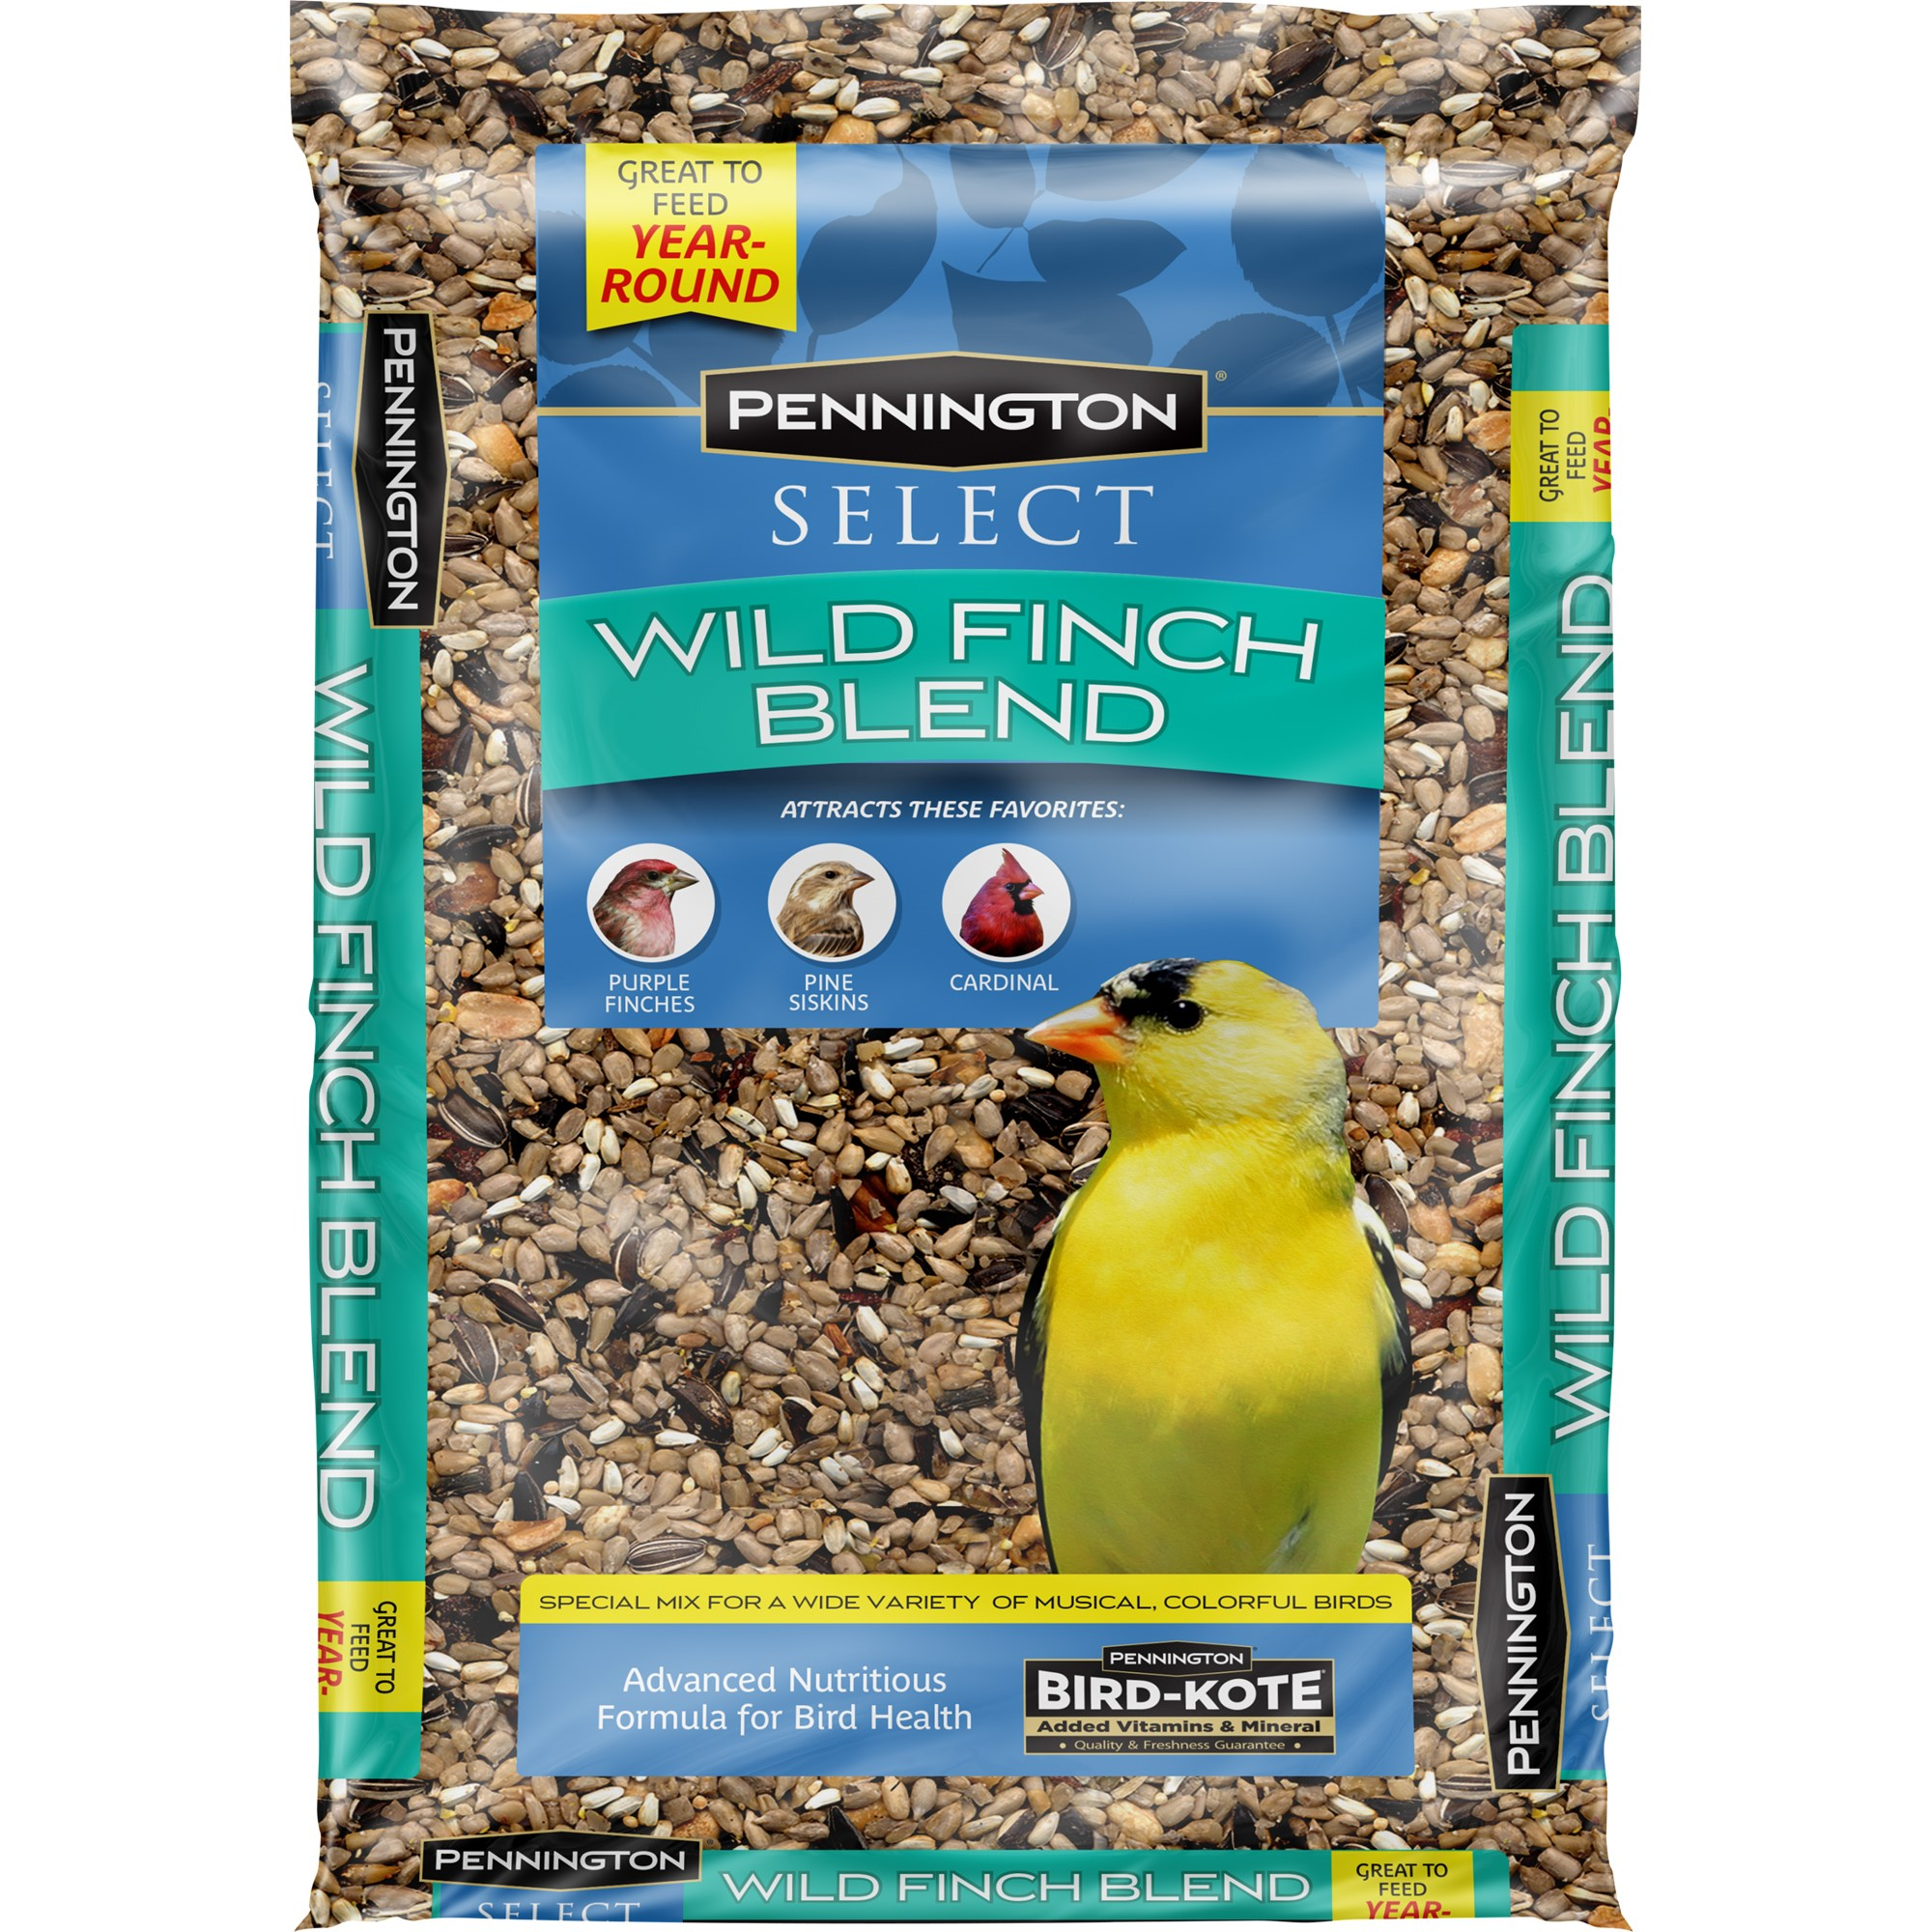 Pennington Wild Bird Feed and Seed Select Wind Finch Blend, 10 LBS